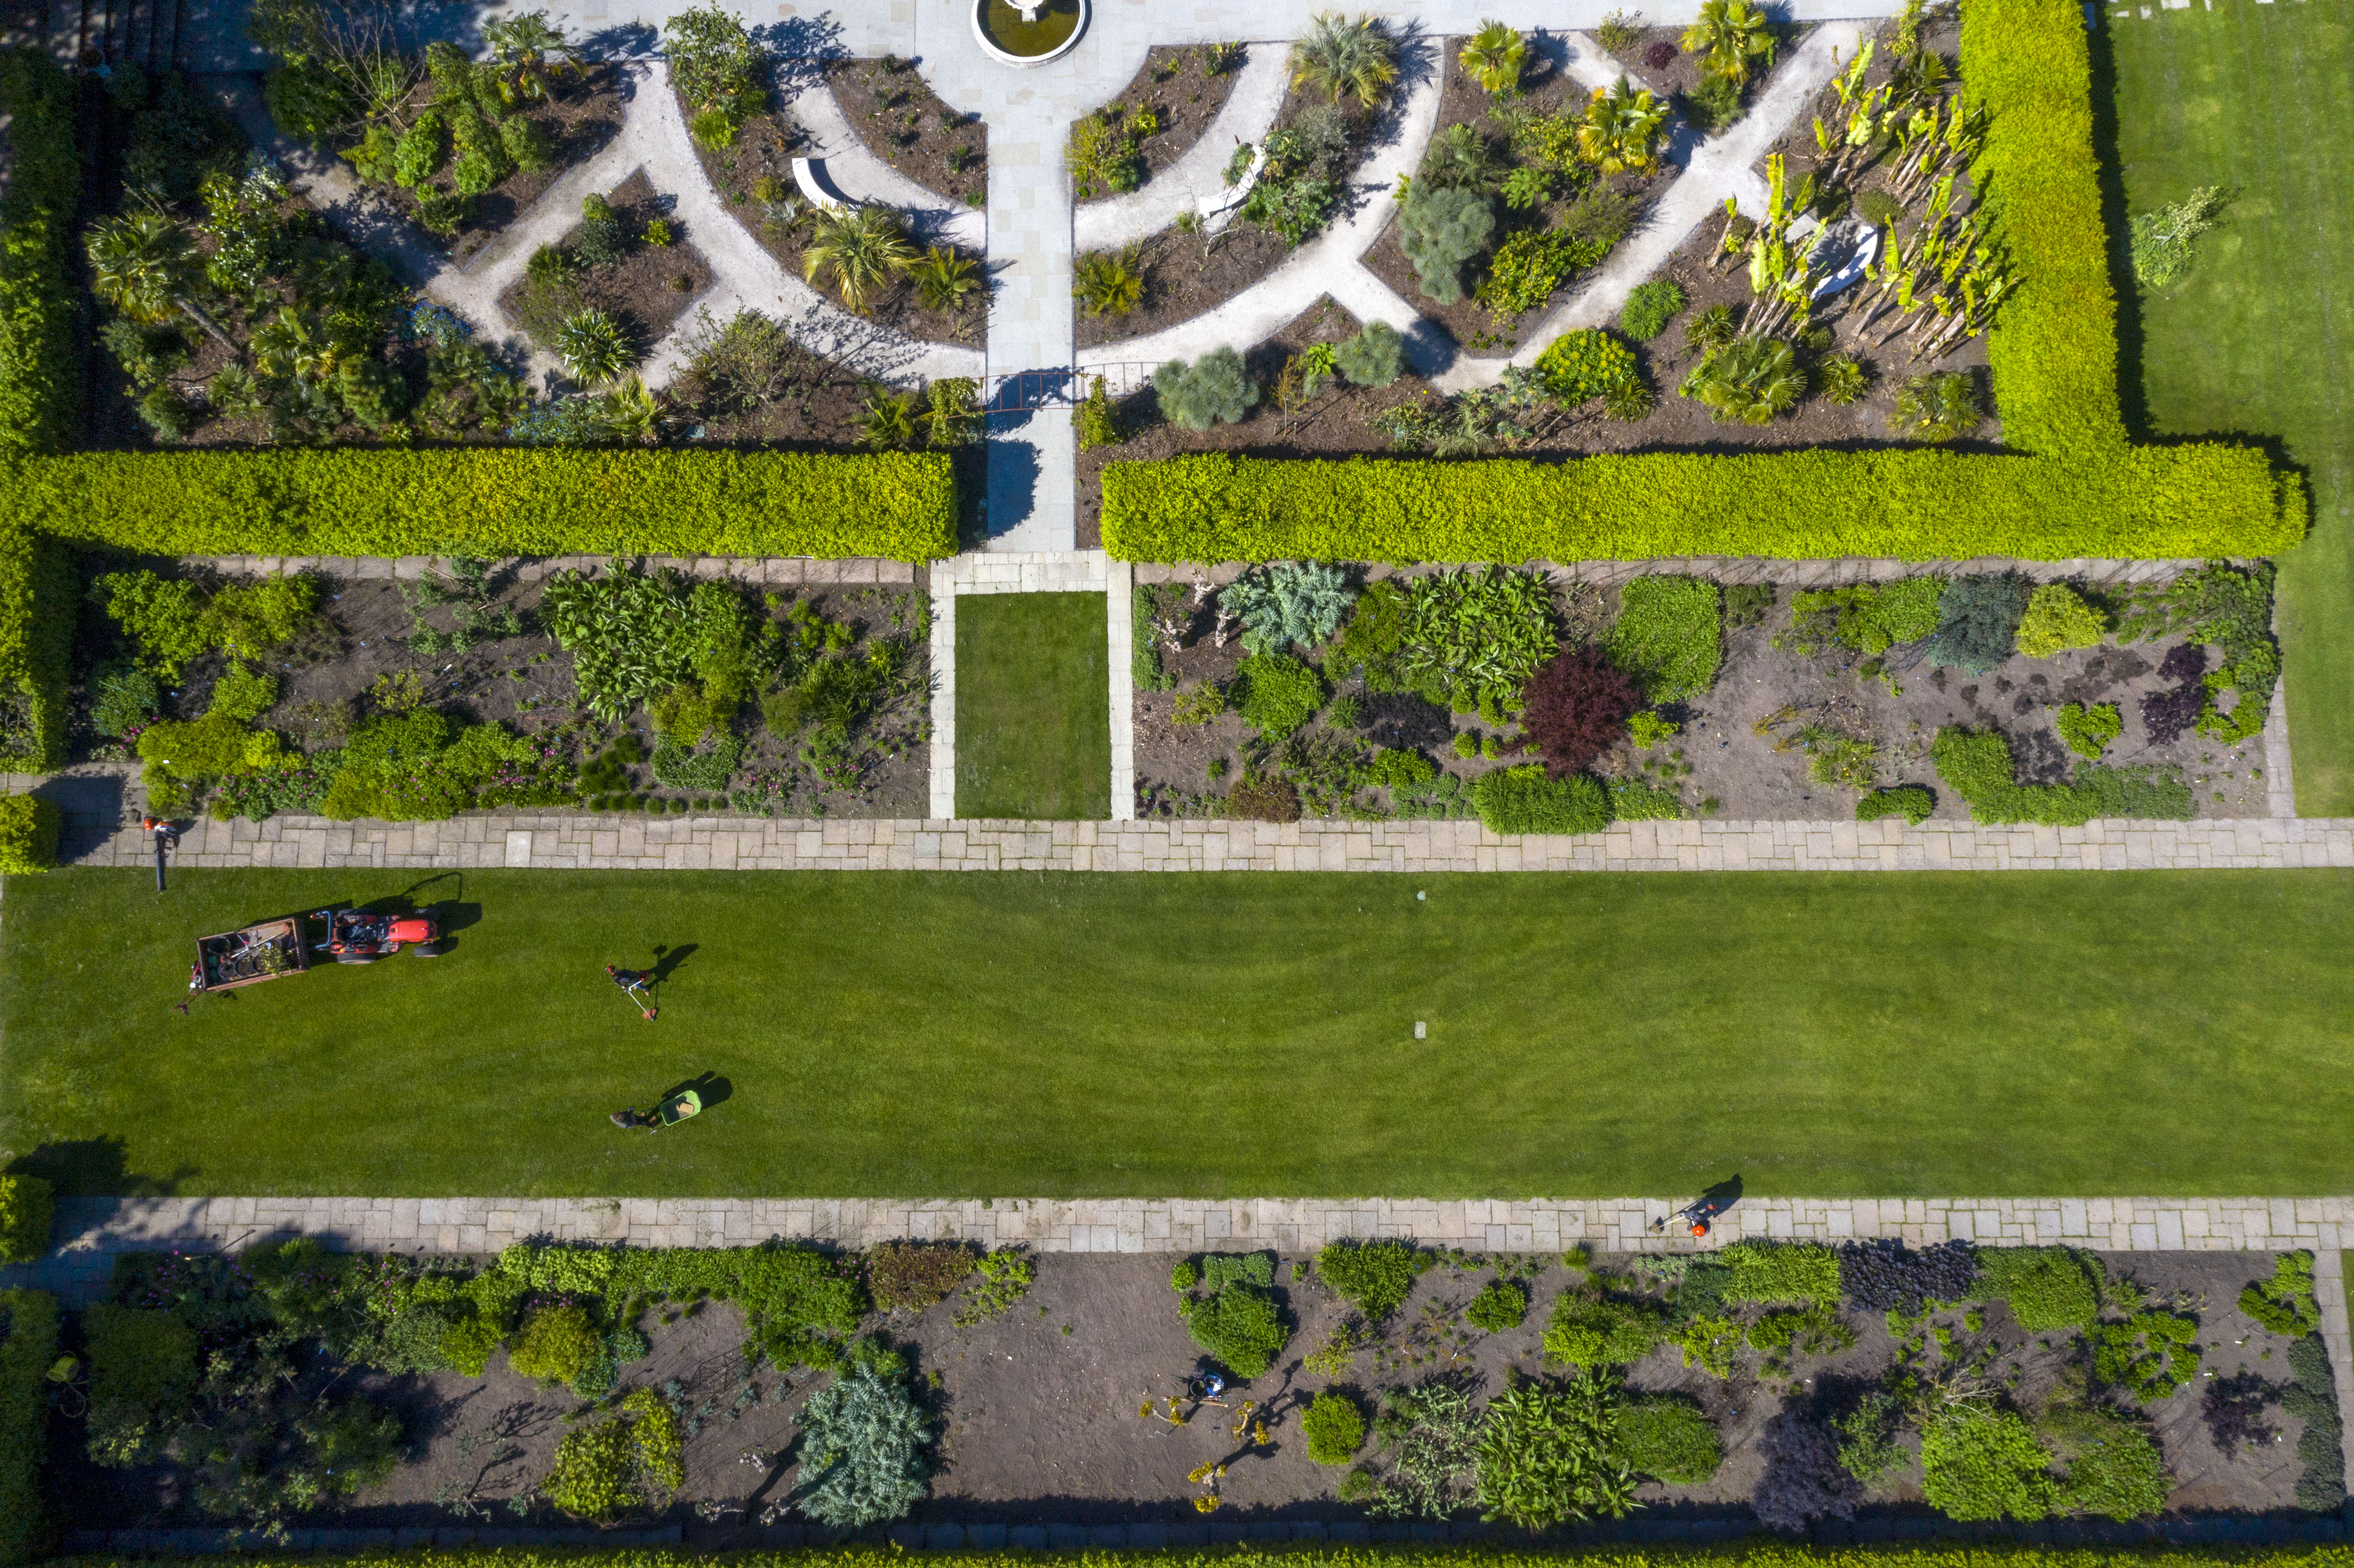 A small dedicated team of horticulturists care for RHS Garden Wisley near Woking, Surrey, while spring highlights burst into bloom, as the UK continues in lockdown to help curb the spread of the coronavirus.